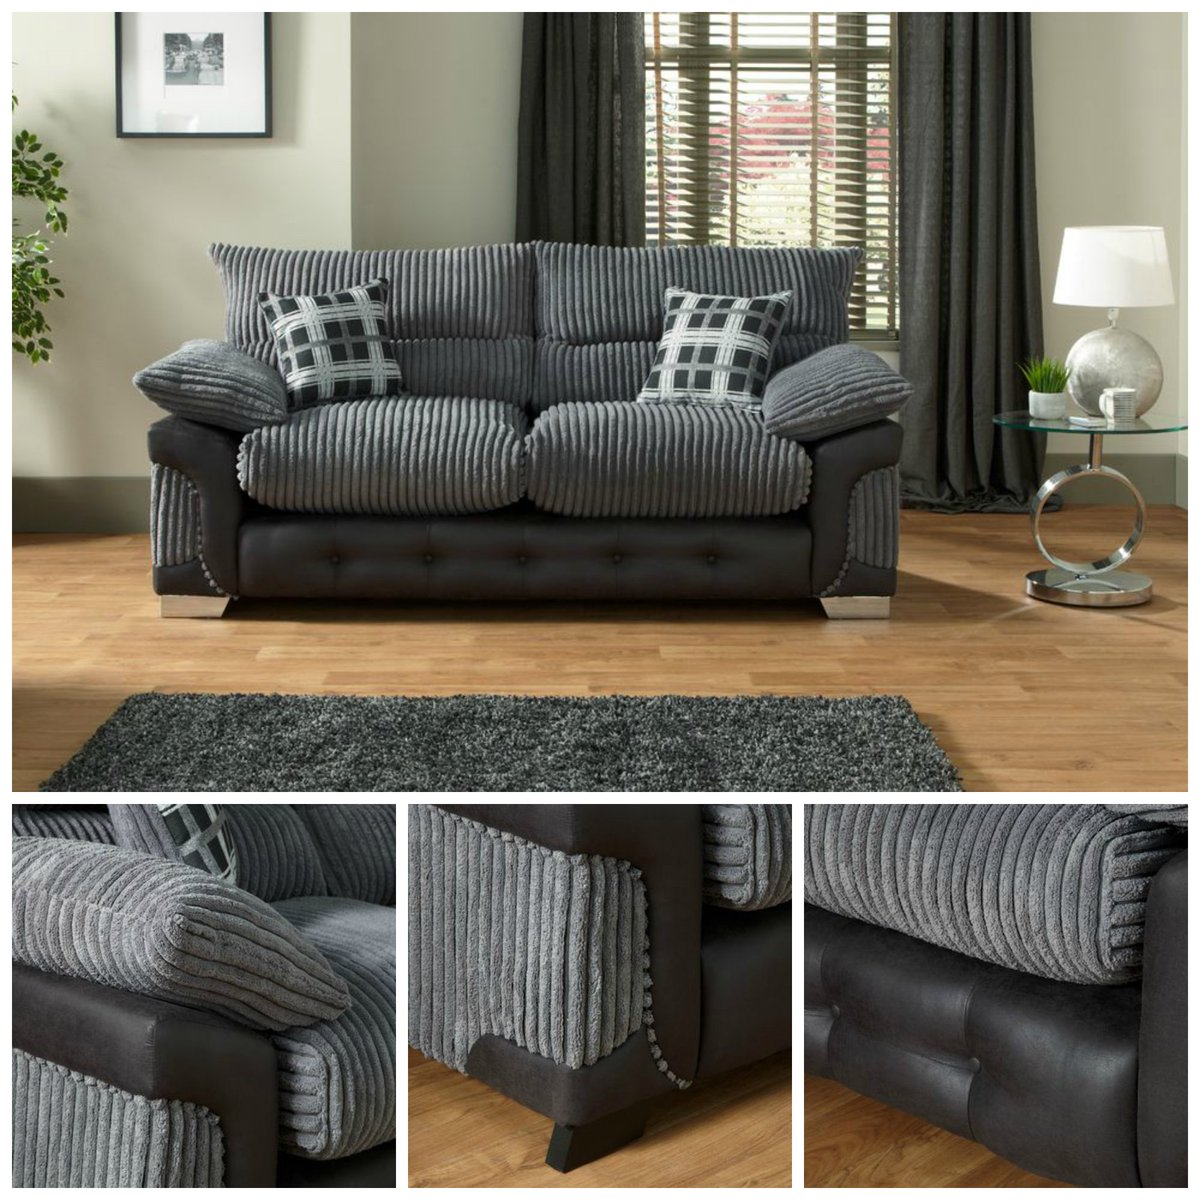 Scs Sofas On Twitter Treat Yourself To This Logan 3 Seater Sofa For As Little 5 Per Month With 4 Years Free Credit